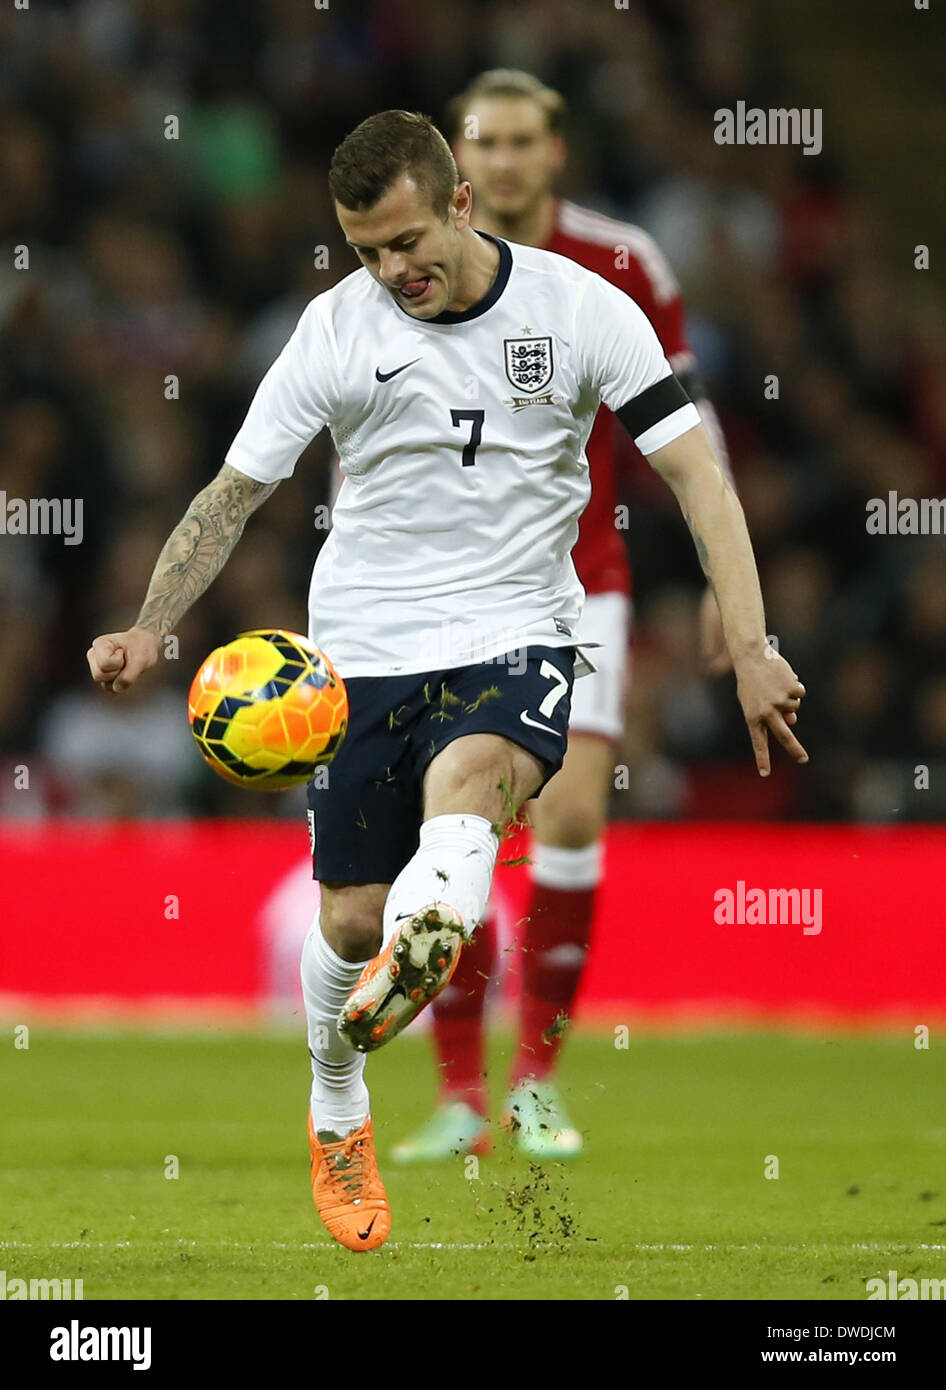 London, UK. 5th Mar, 2014. Jack Wilshere of England passes the ball during an international friendly soccer match between England and Denmark at Wembley Stadium in London, Britain on March 5, 2014. England won 1-0. Credit:  Wang Lili/Xinhua/Alamy Live News - Stock Image